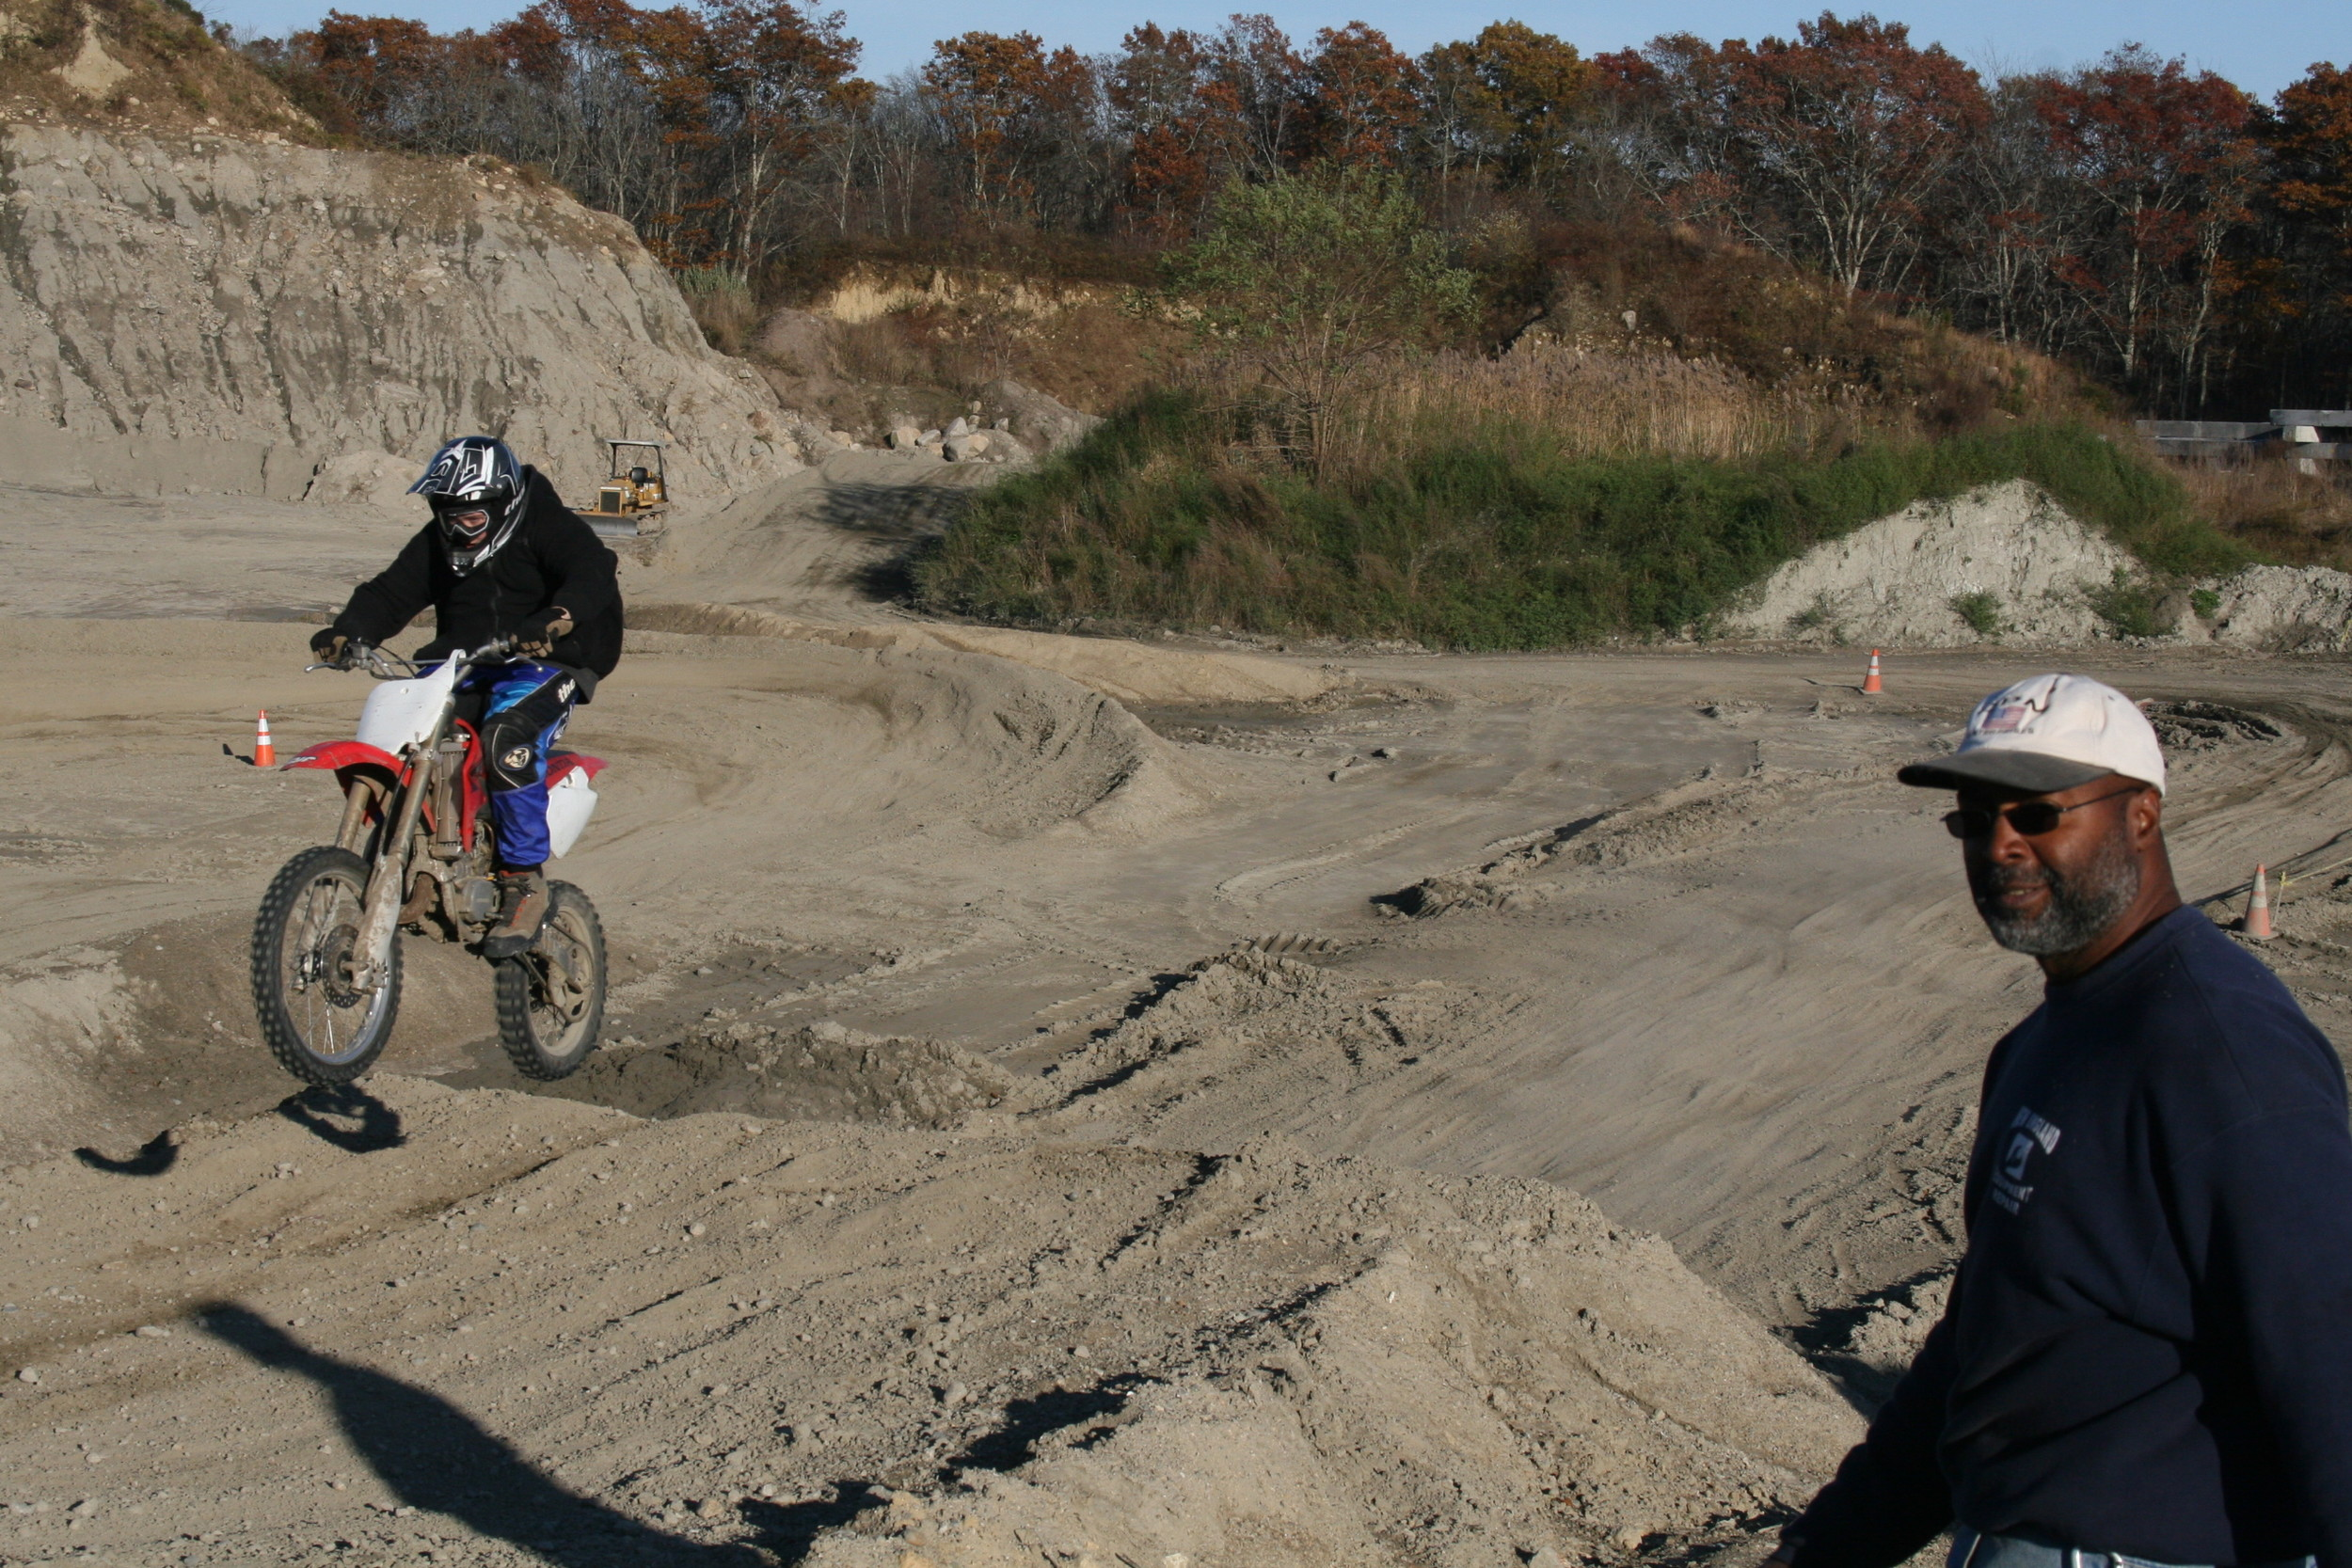 Ray Johnson (right) observes as a dirt biker a few years ago rounds the course at the site of the proposed motocross park the council failed to approve last week.